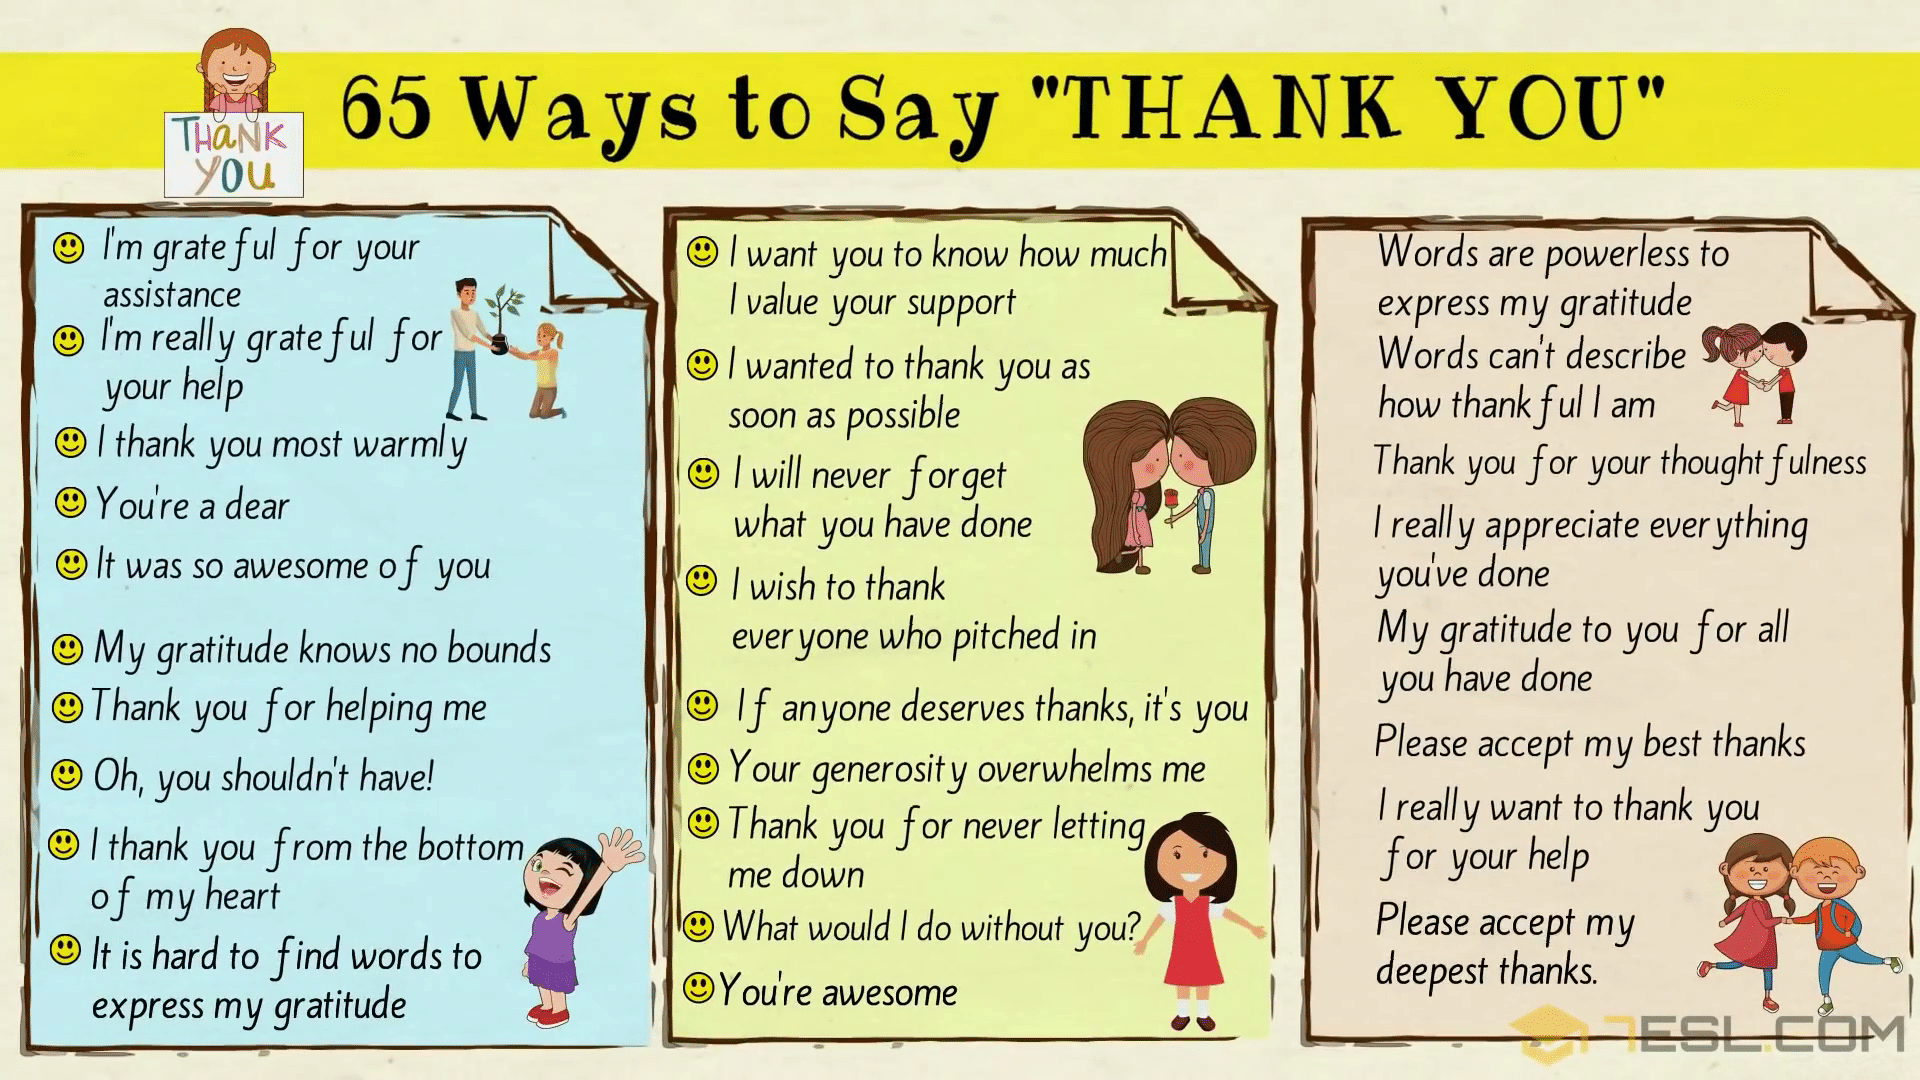 Thank You Synonym: 65 Ways to Say THANK YOU